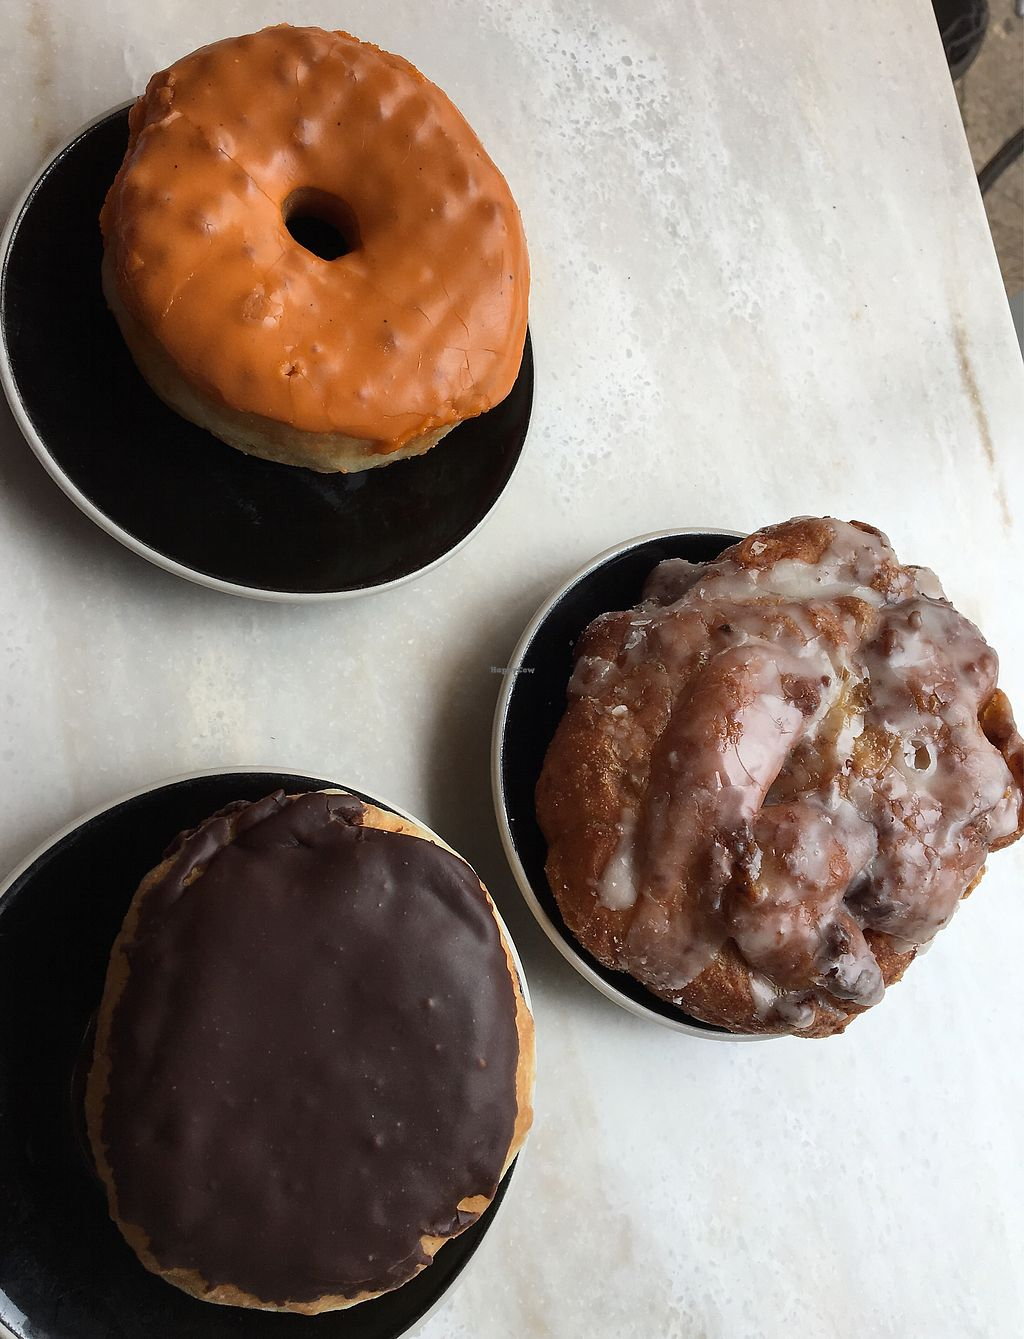 """Photo of Sweet Freedom Bakery  by <a href=""""/members/profile/Thepennsyltuckyvegan"""">Thepennsyltuckyvegan</a> <br/>apple fritter, Boston Creme, chai tea donut  <br/> June 21, 2017  - <a href='/contact/abuse/image/20302/271923'>Report</a>"""